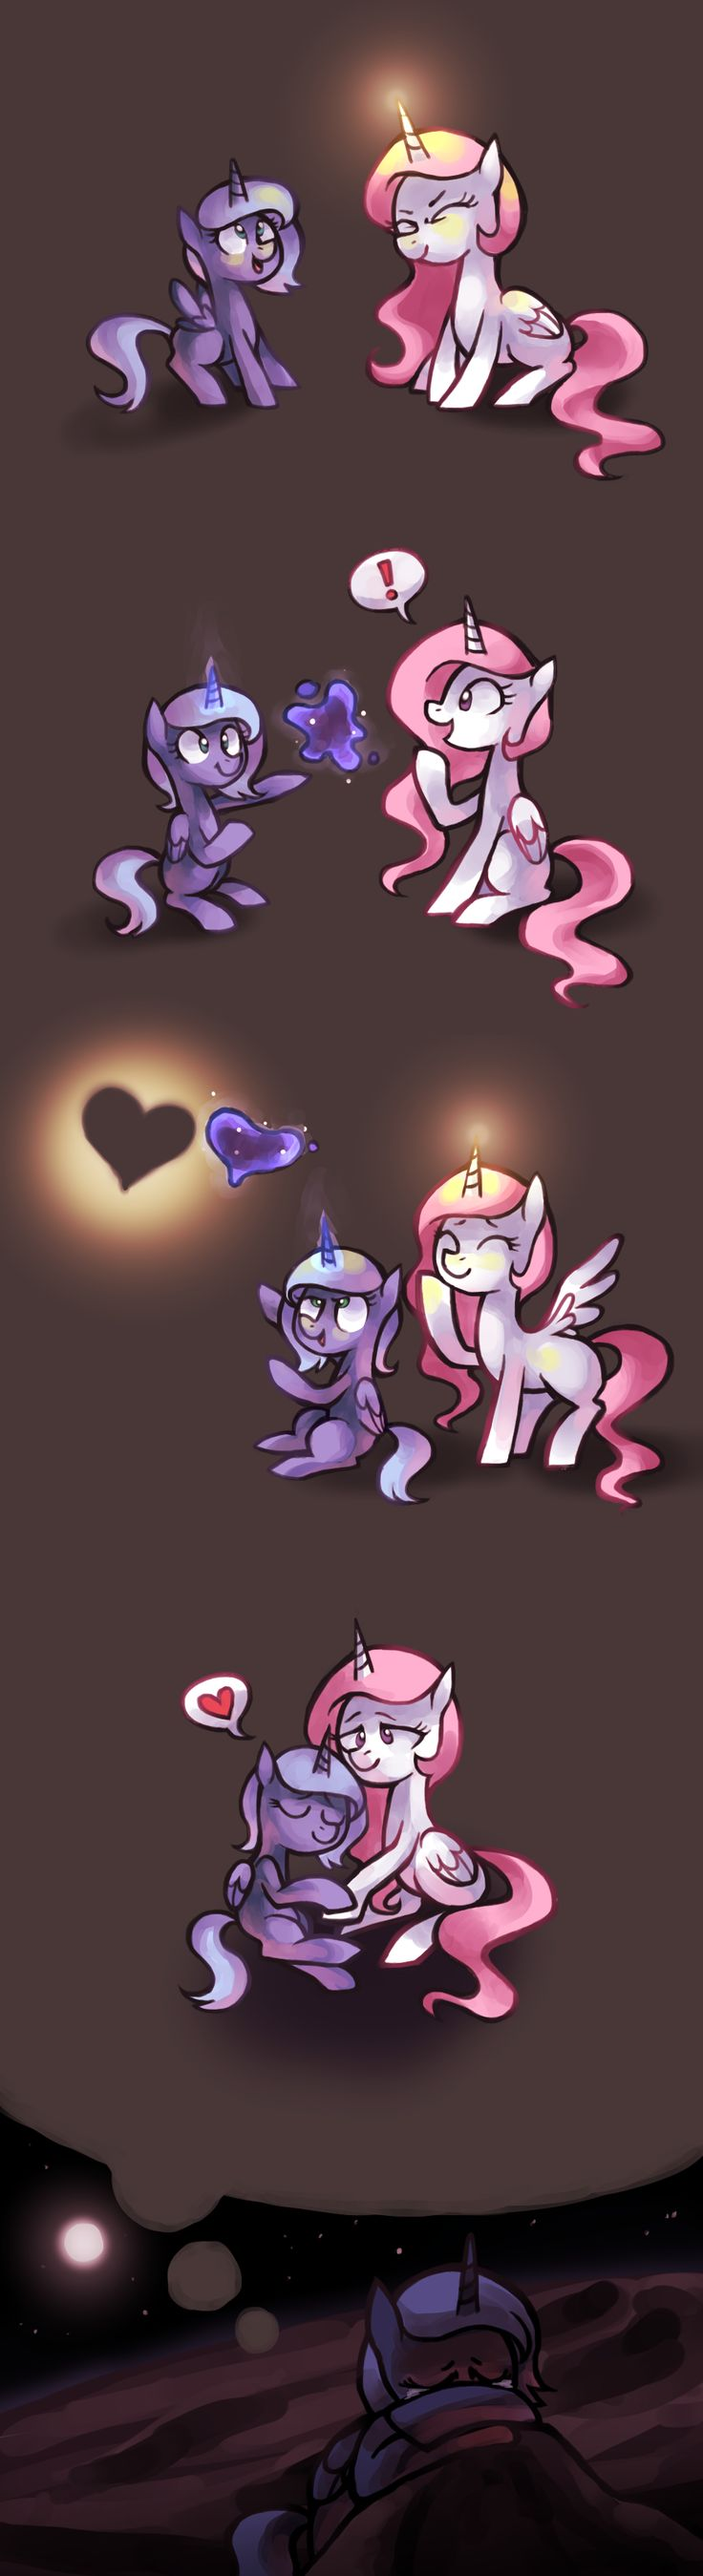 shadow_puppet_by_karzahnii-d4z5spf.png (960×3520)